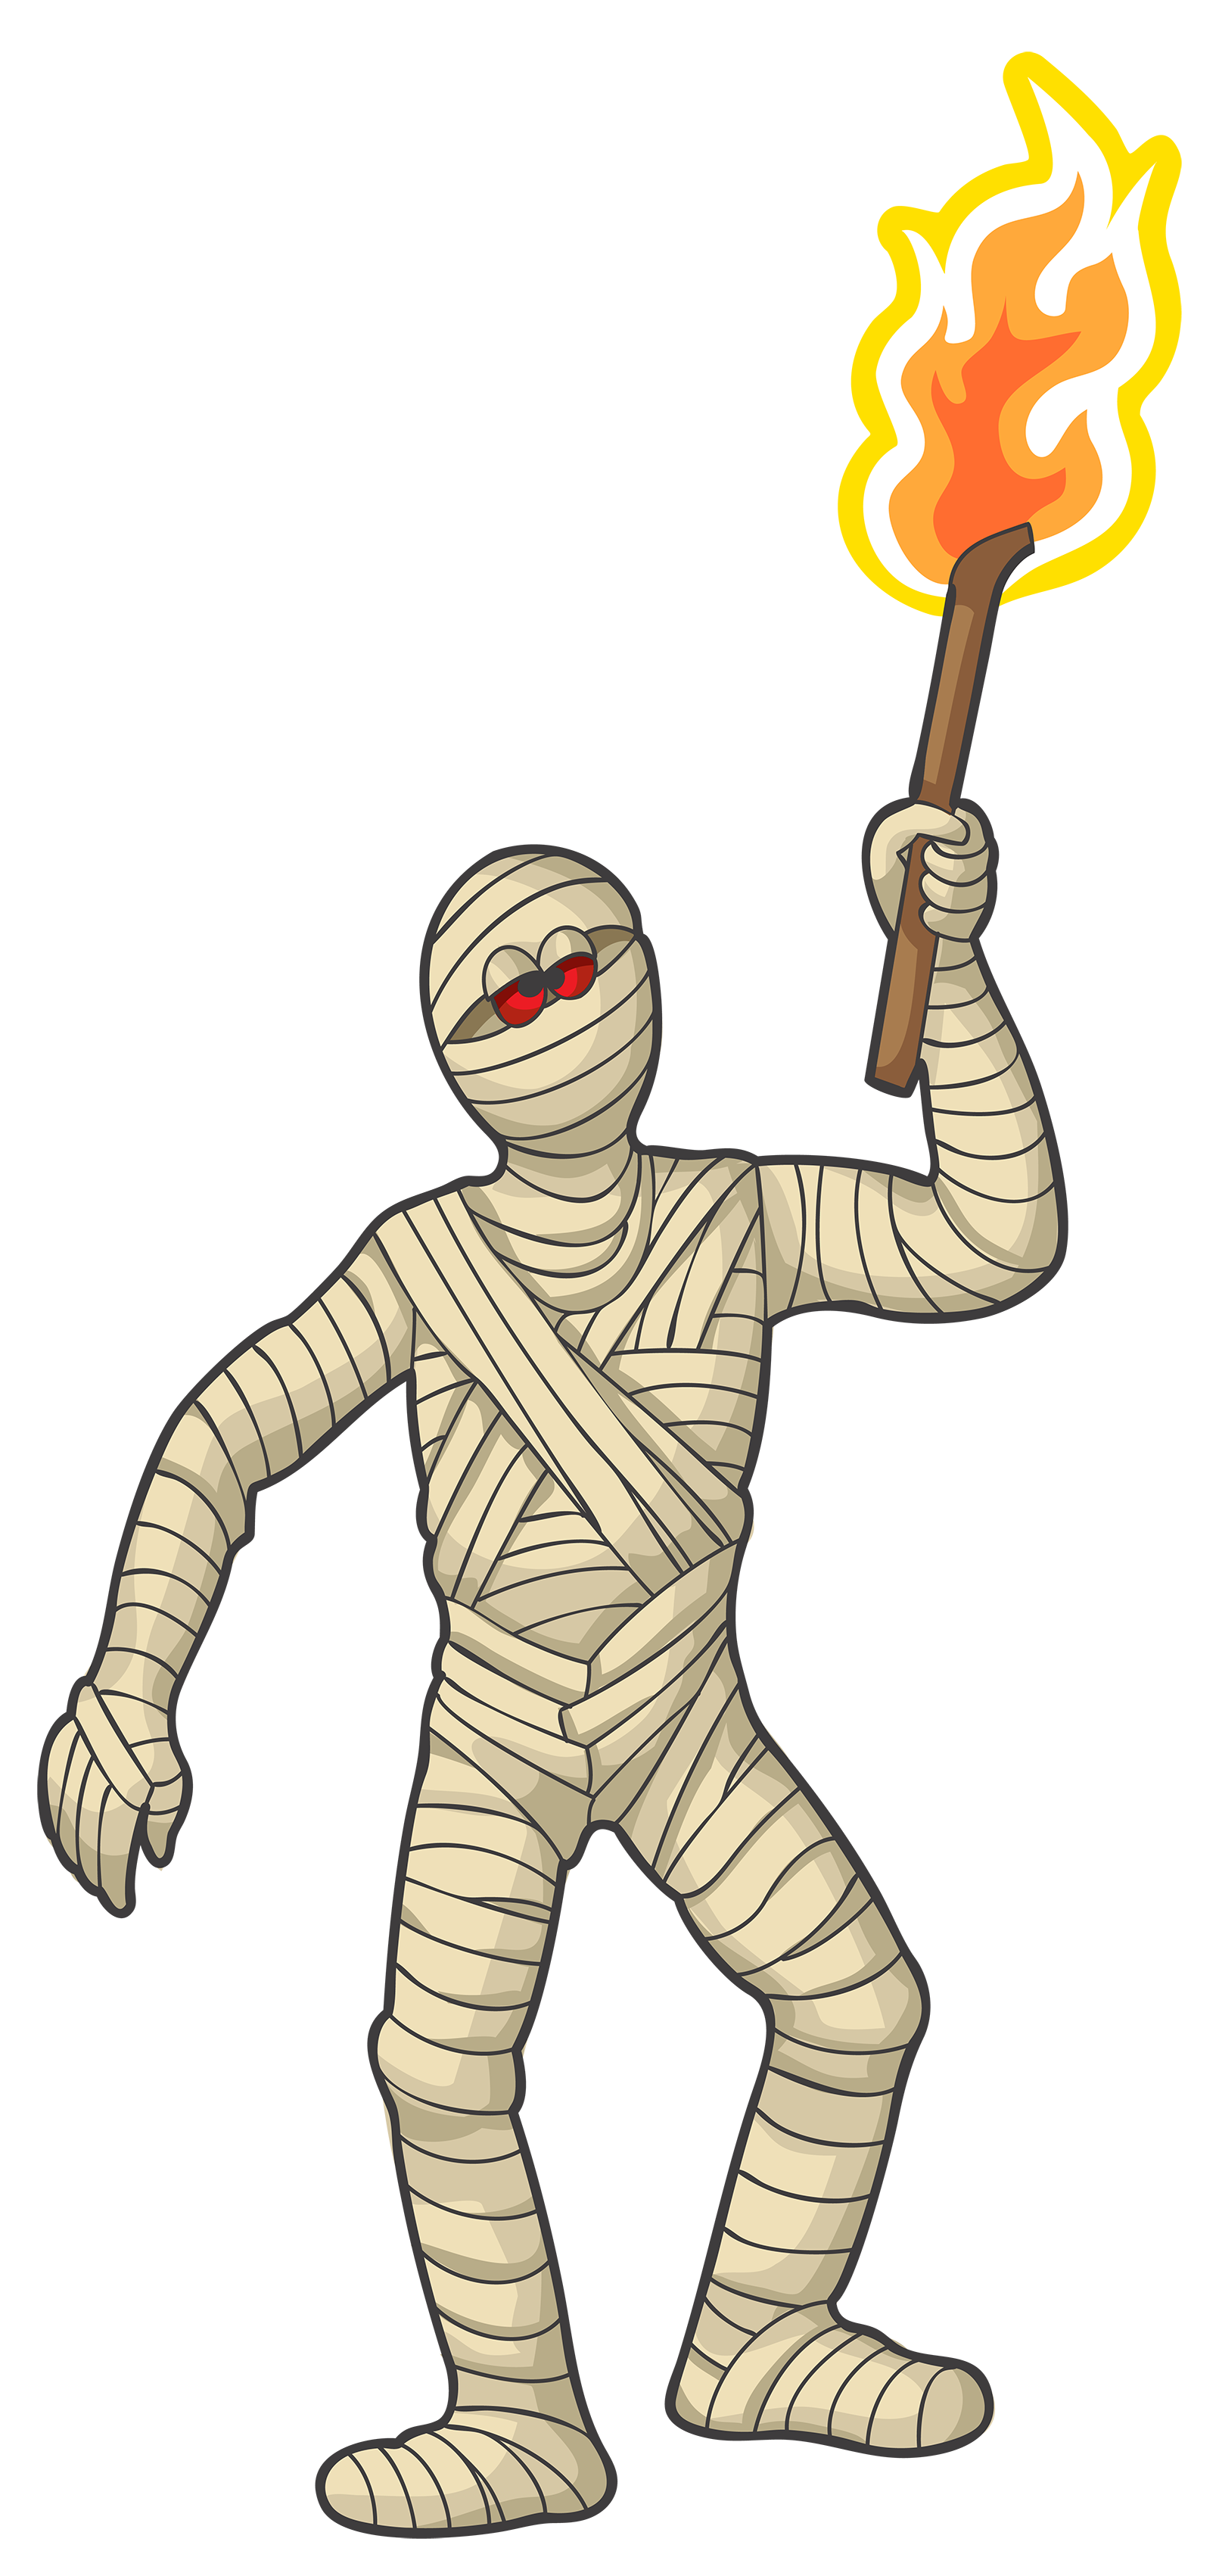 Halloween mummy clipart clipart black and white stock Halloween Mummy PNG Clipart Image | Gallery Yopriceville - High ... clipart black and white stock